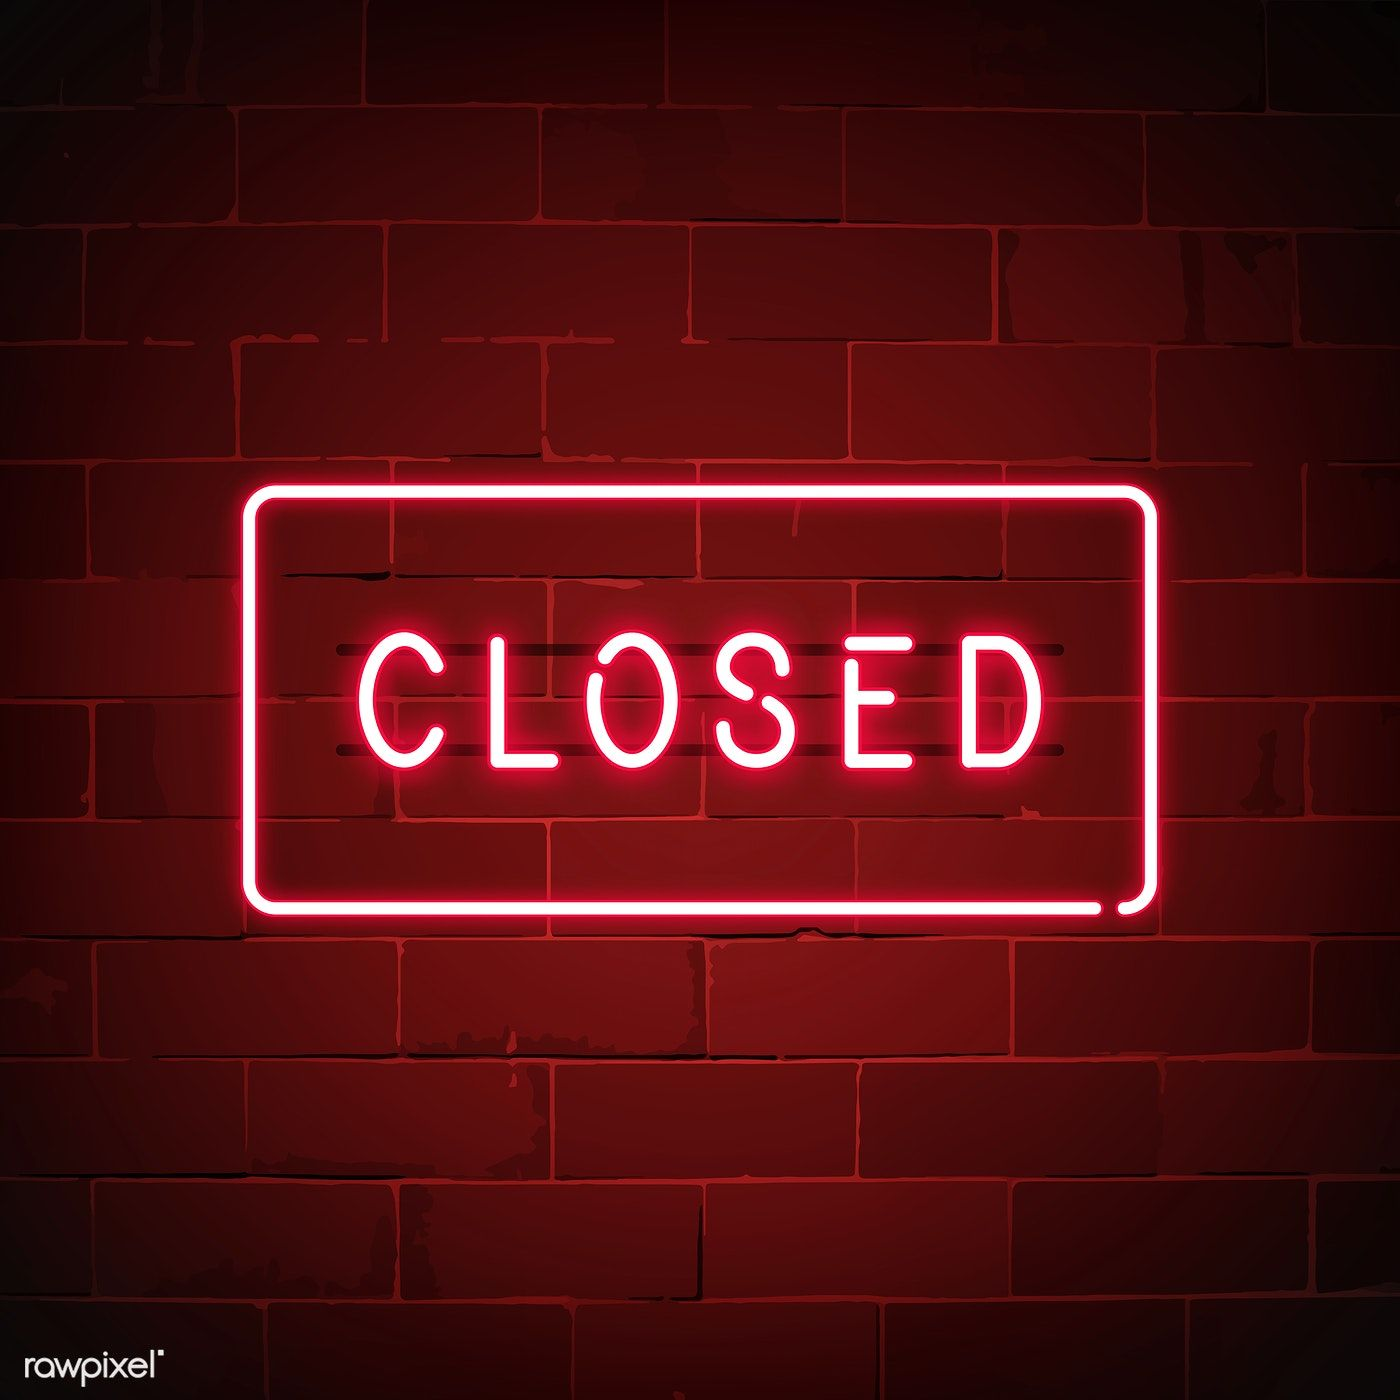 Red Closed Neon Sign Vector Free Image By Rawpixel Com Ningzk V Dark Red Wallpaper Neon Signs Neon